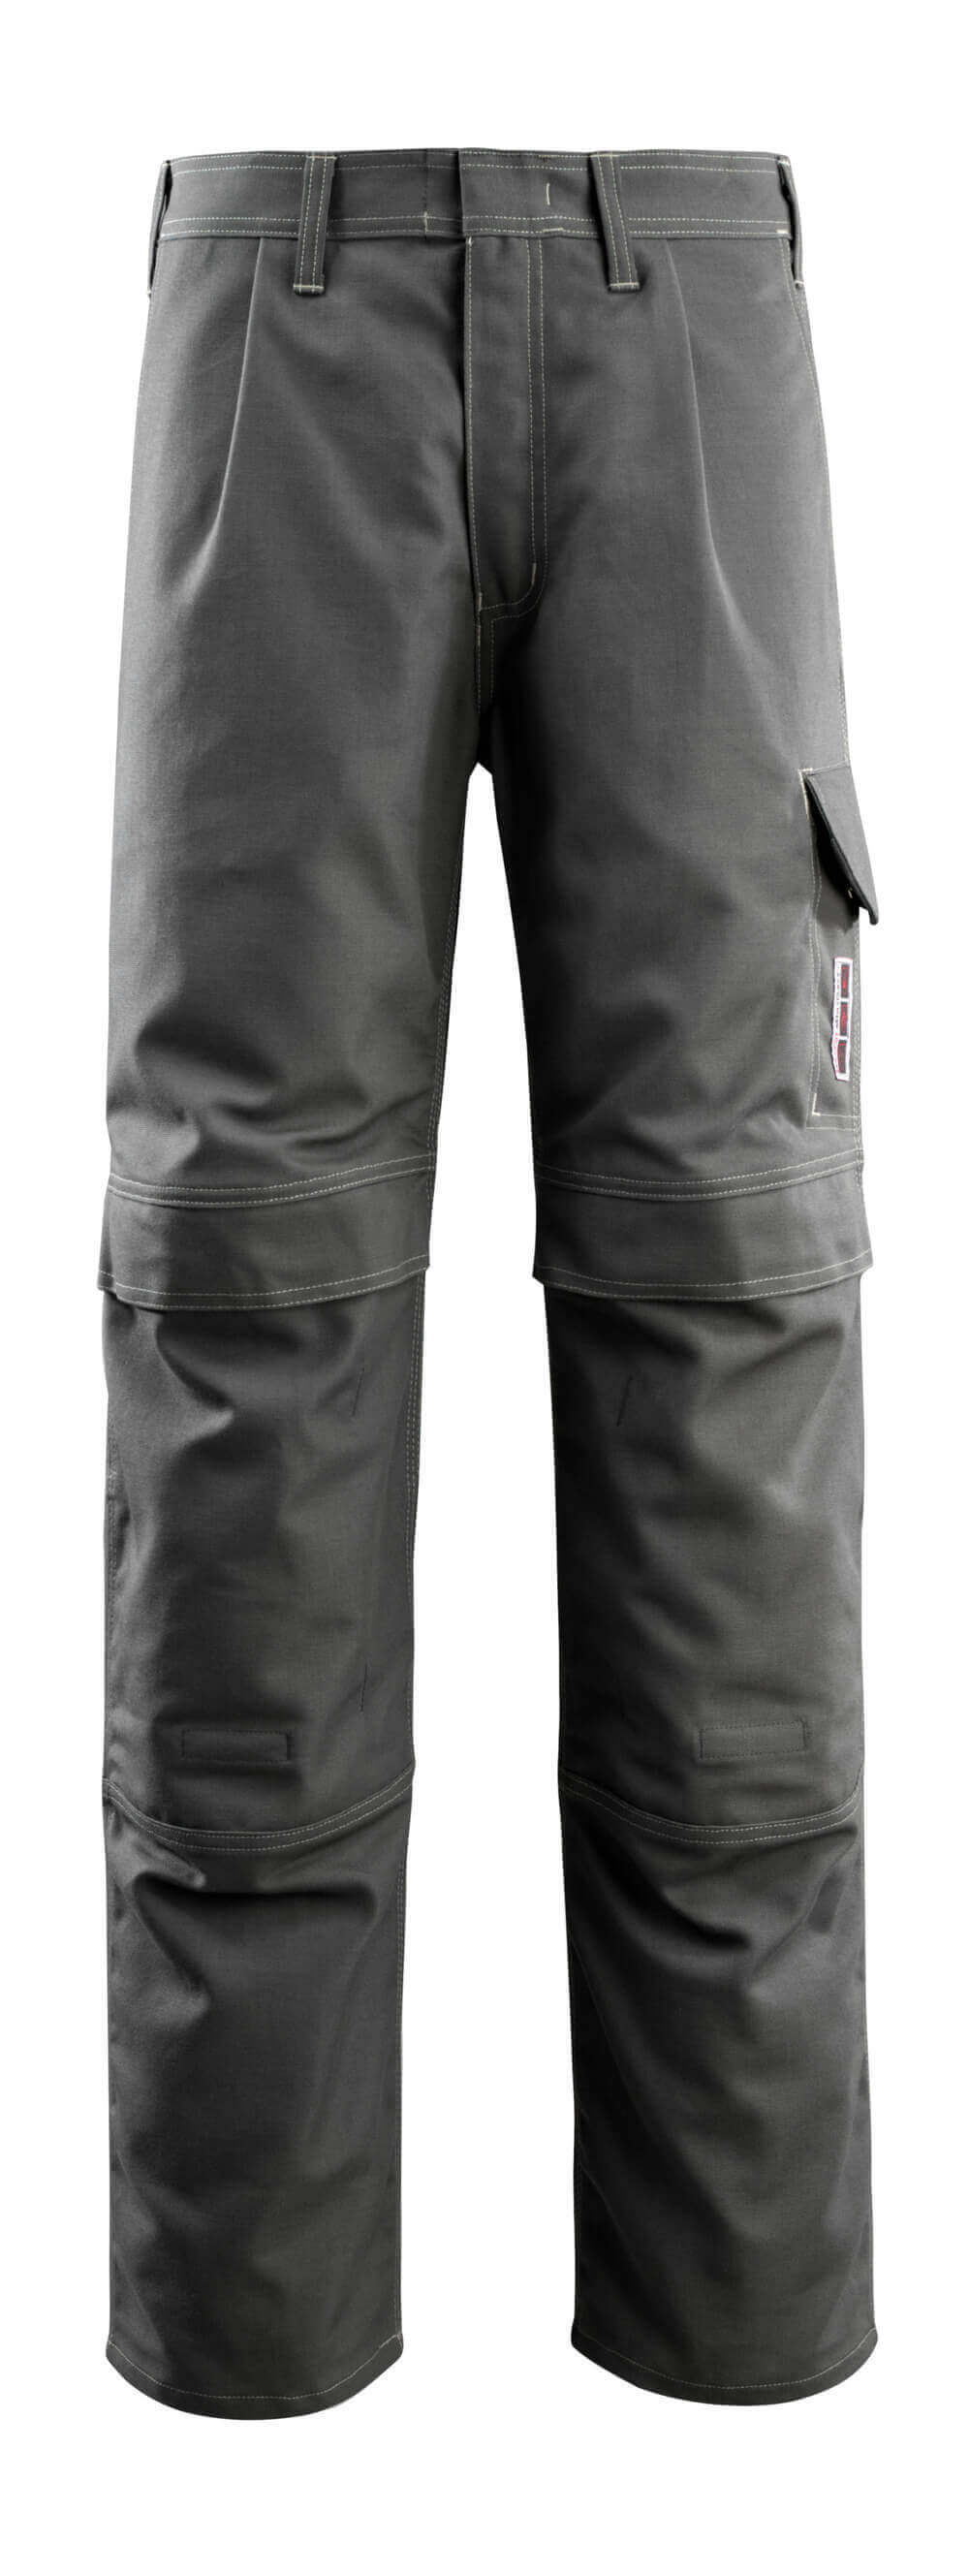 06679-135-18 Pants with kneepad pockets - dark anthracite